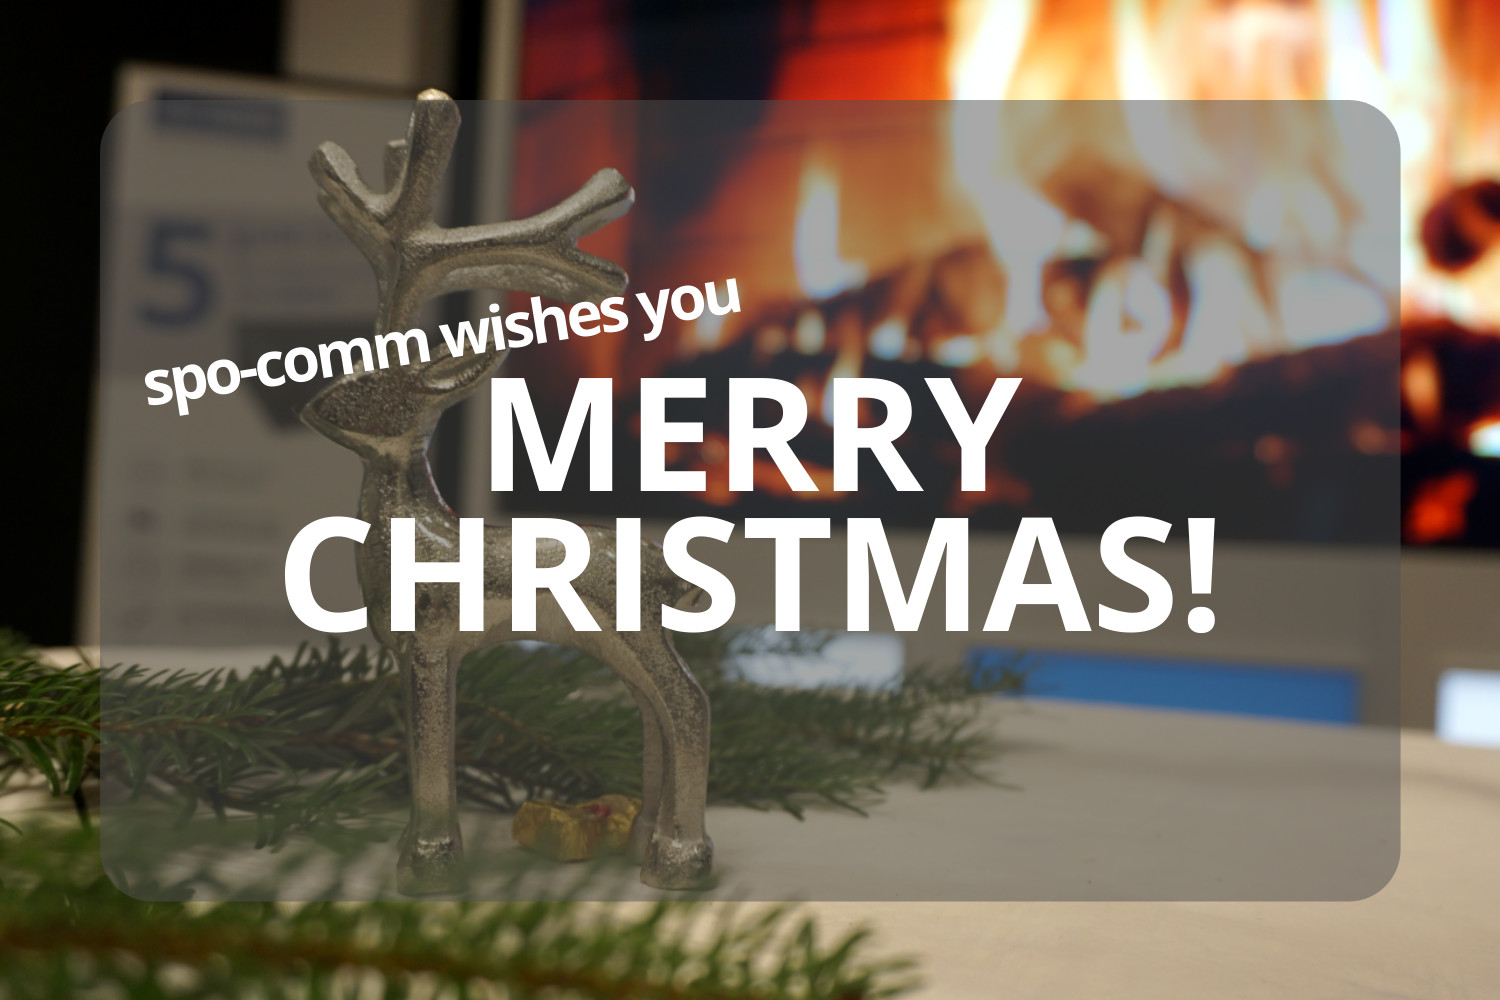 spo-comm wishes you a merry christmas 2019